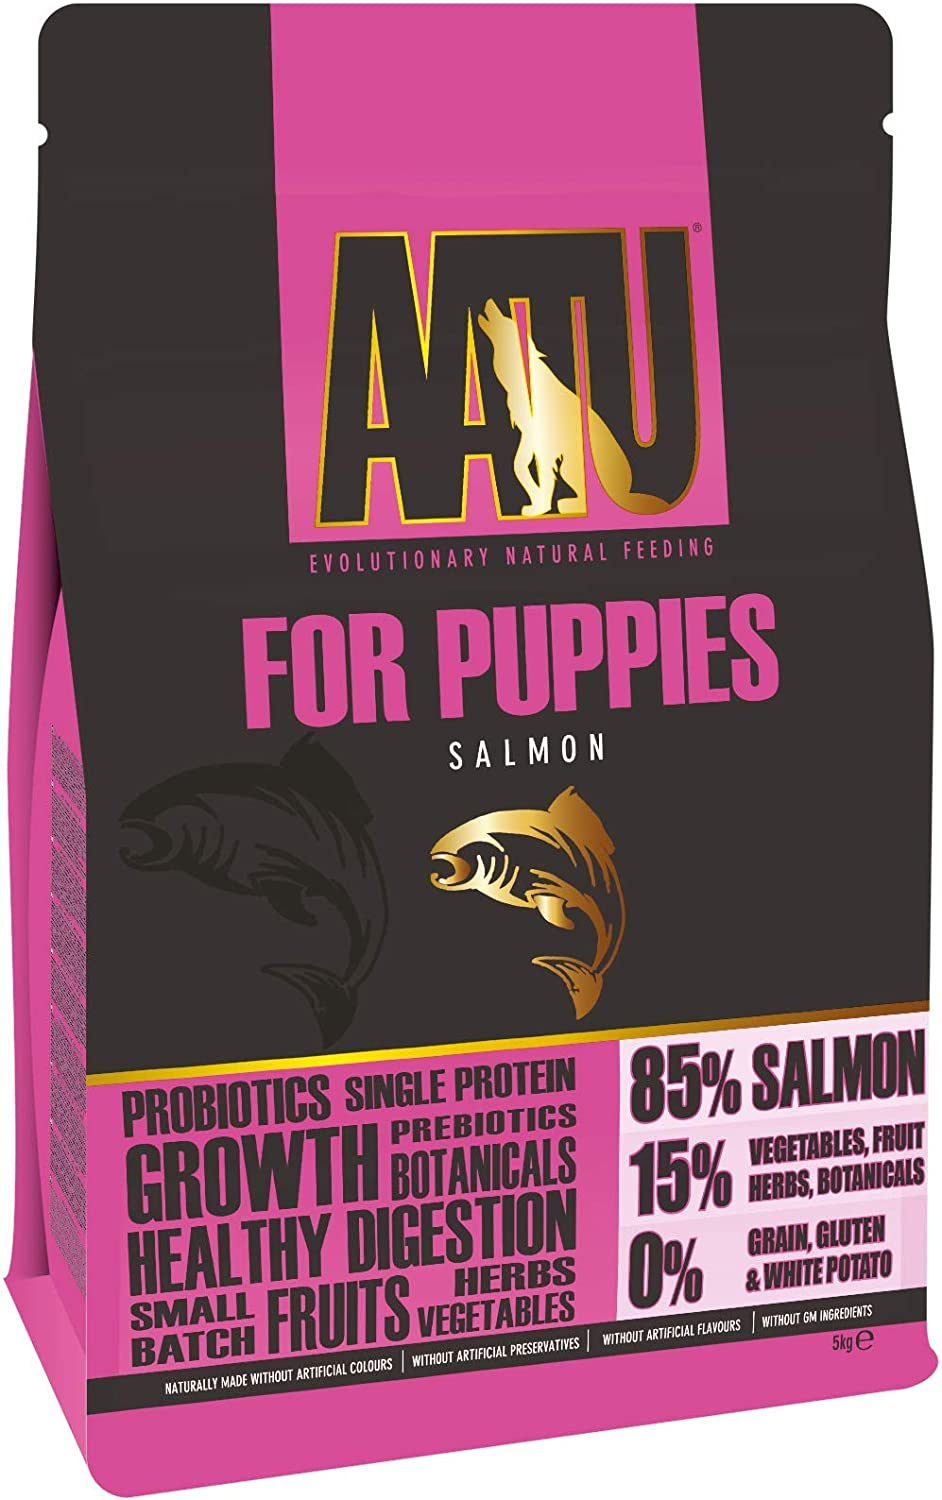 AATU 80 20 Dry Dog Food for Puppies, Salmon, Grain Free Recipe, No Artificial Ingredients, Helps to Promote Healthy Digestion, 5 kg